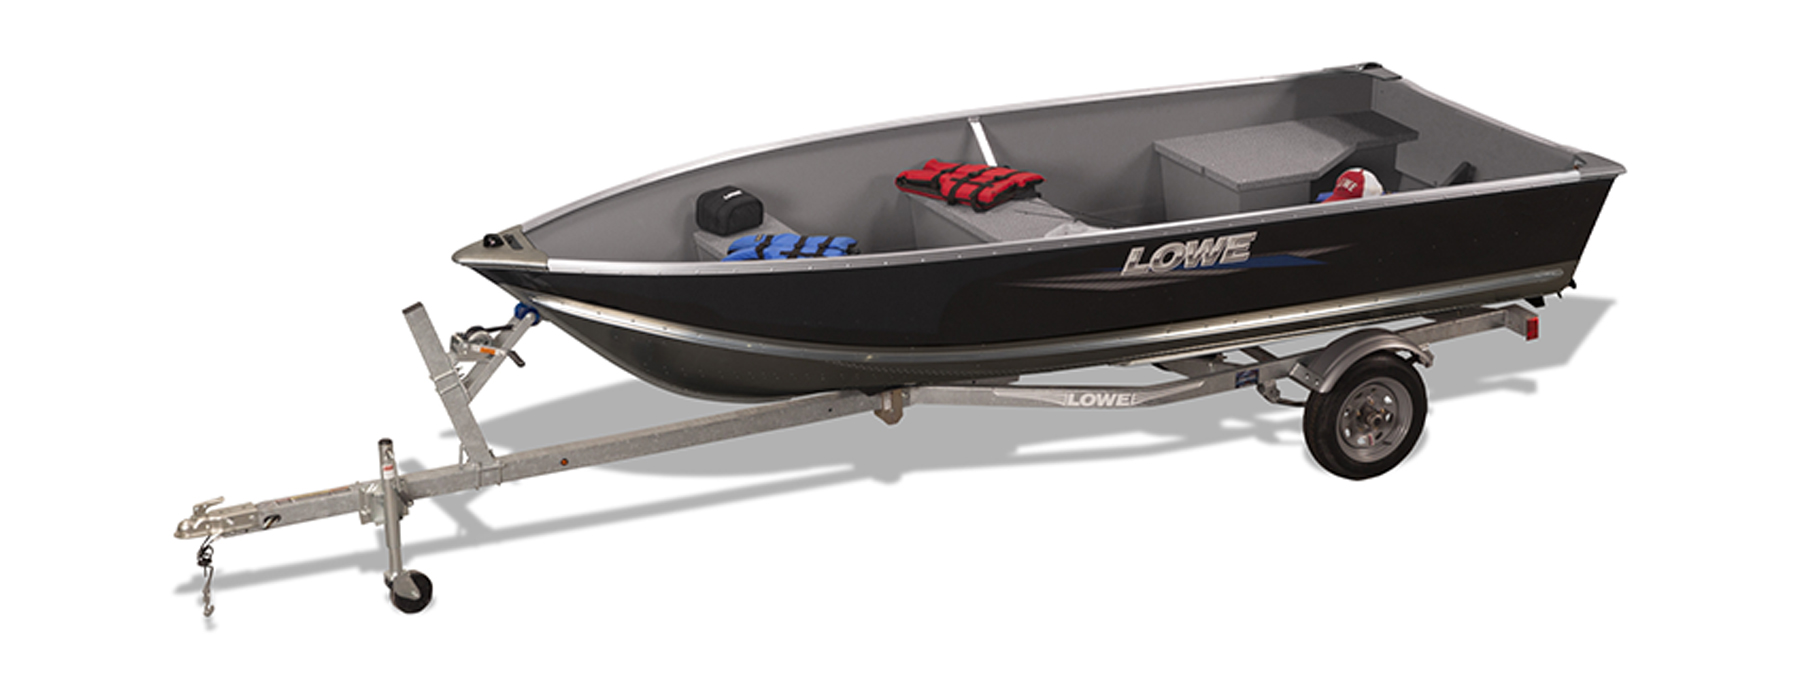 Lowe boats 1257 utility v boat deep v boat and small for A small fishing boat